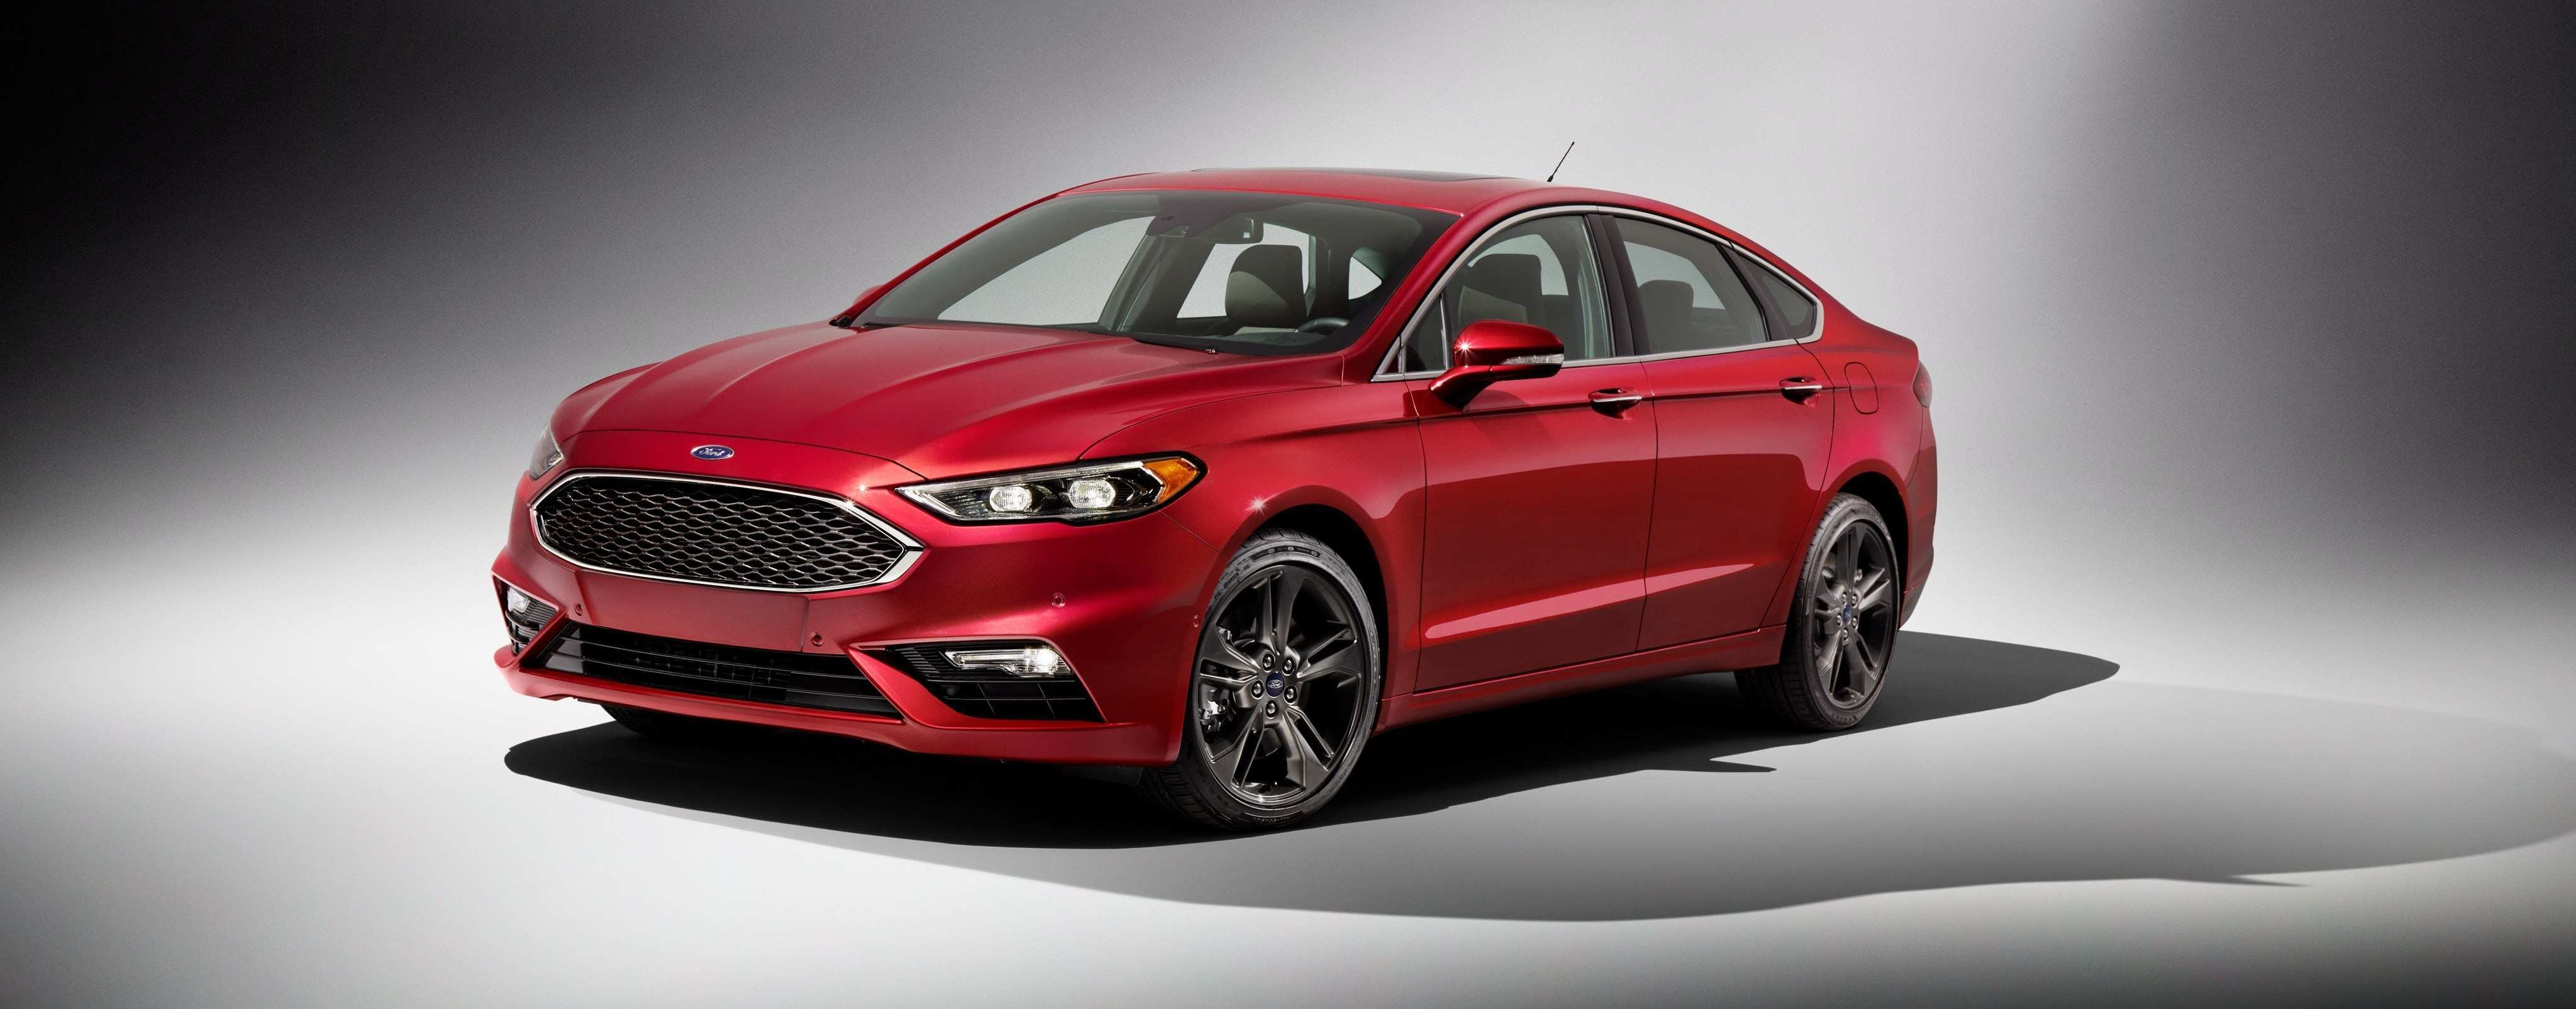 35 Great 2020 Ford Fusion Redesign Research New for 2020 Ford Fusion Redesign